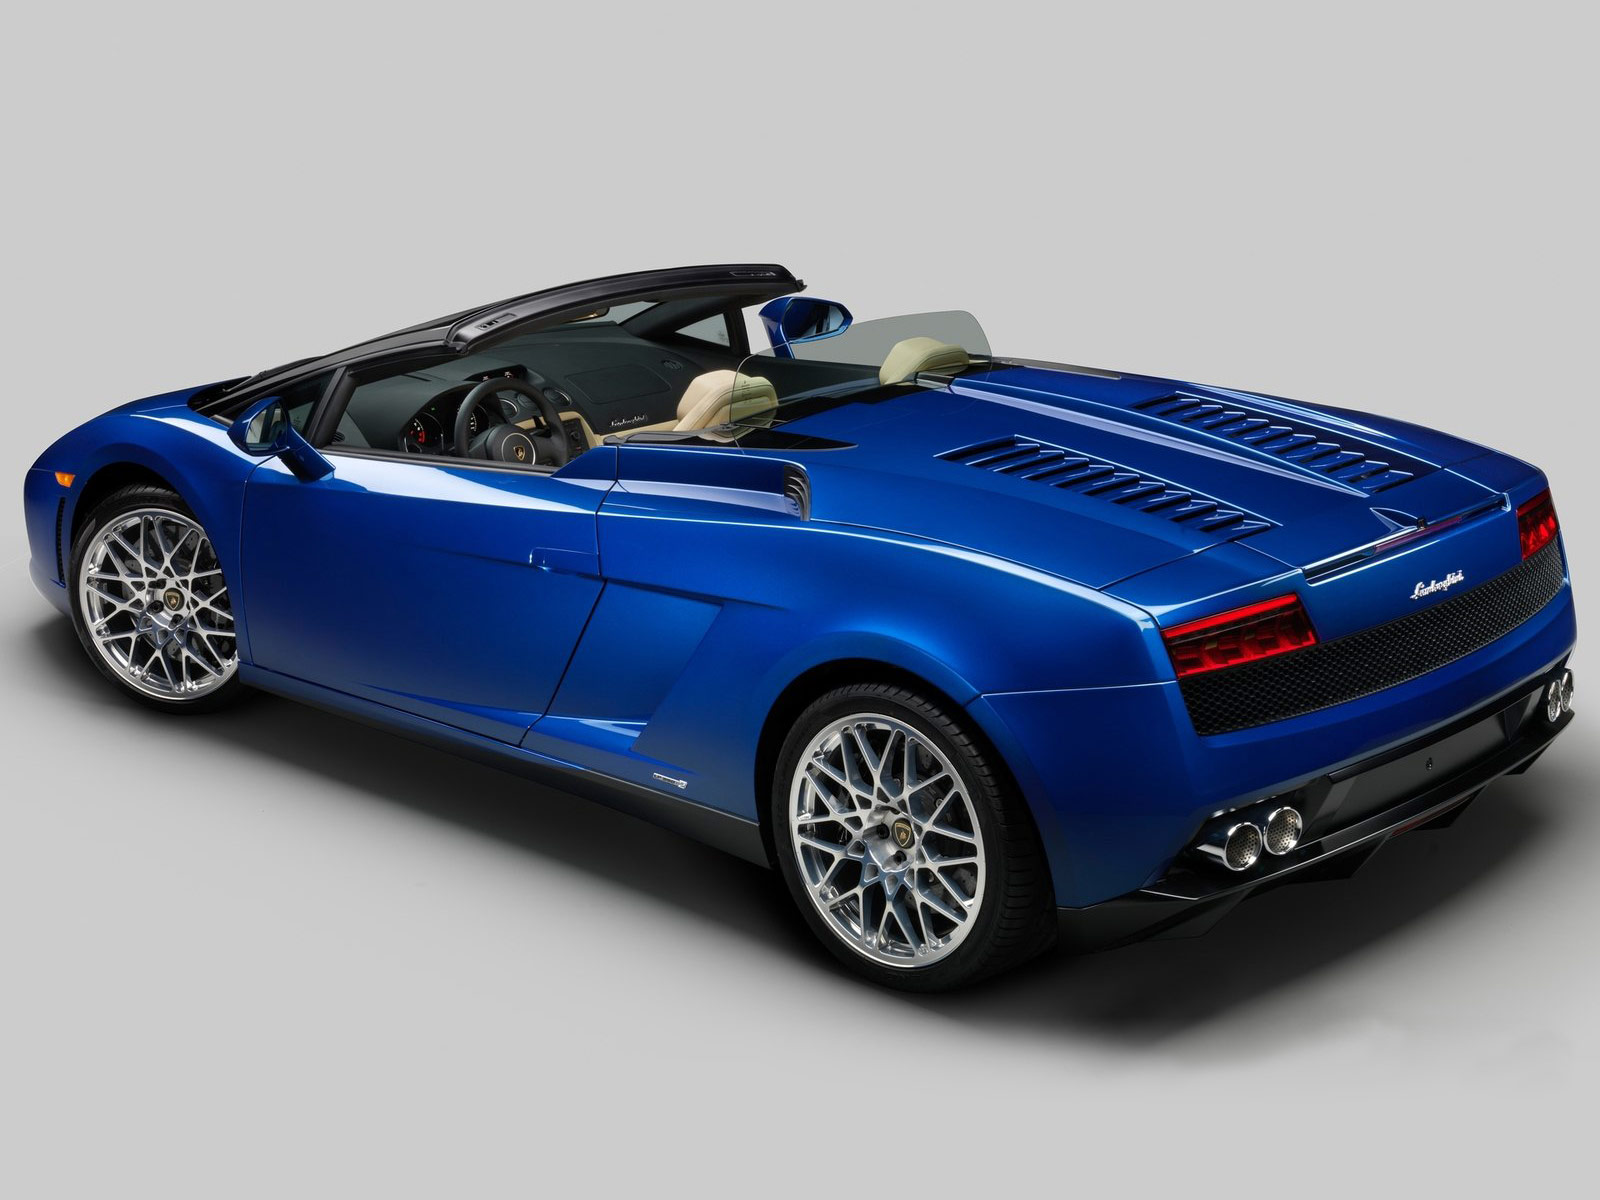 gambar mobil lamborghini gallardo lp550 2 spyder 2012. Black Bedroom Furniture Sets. Home Design Ideas